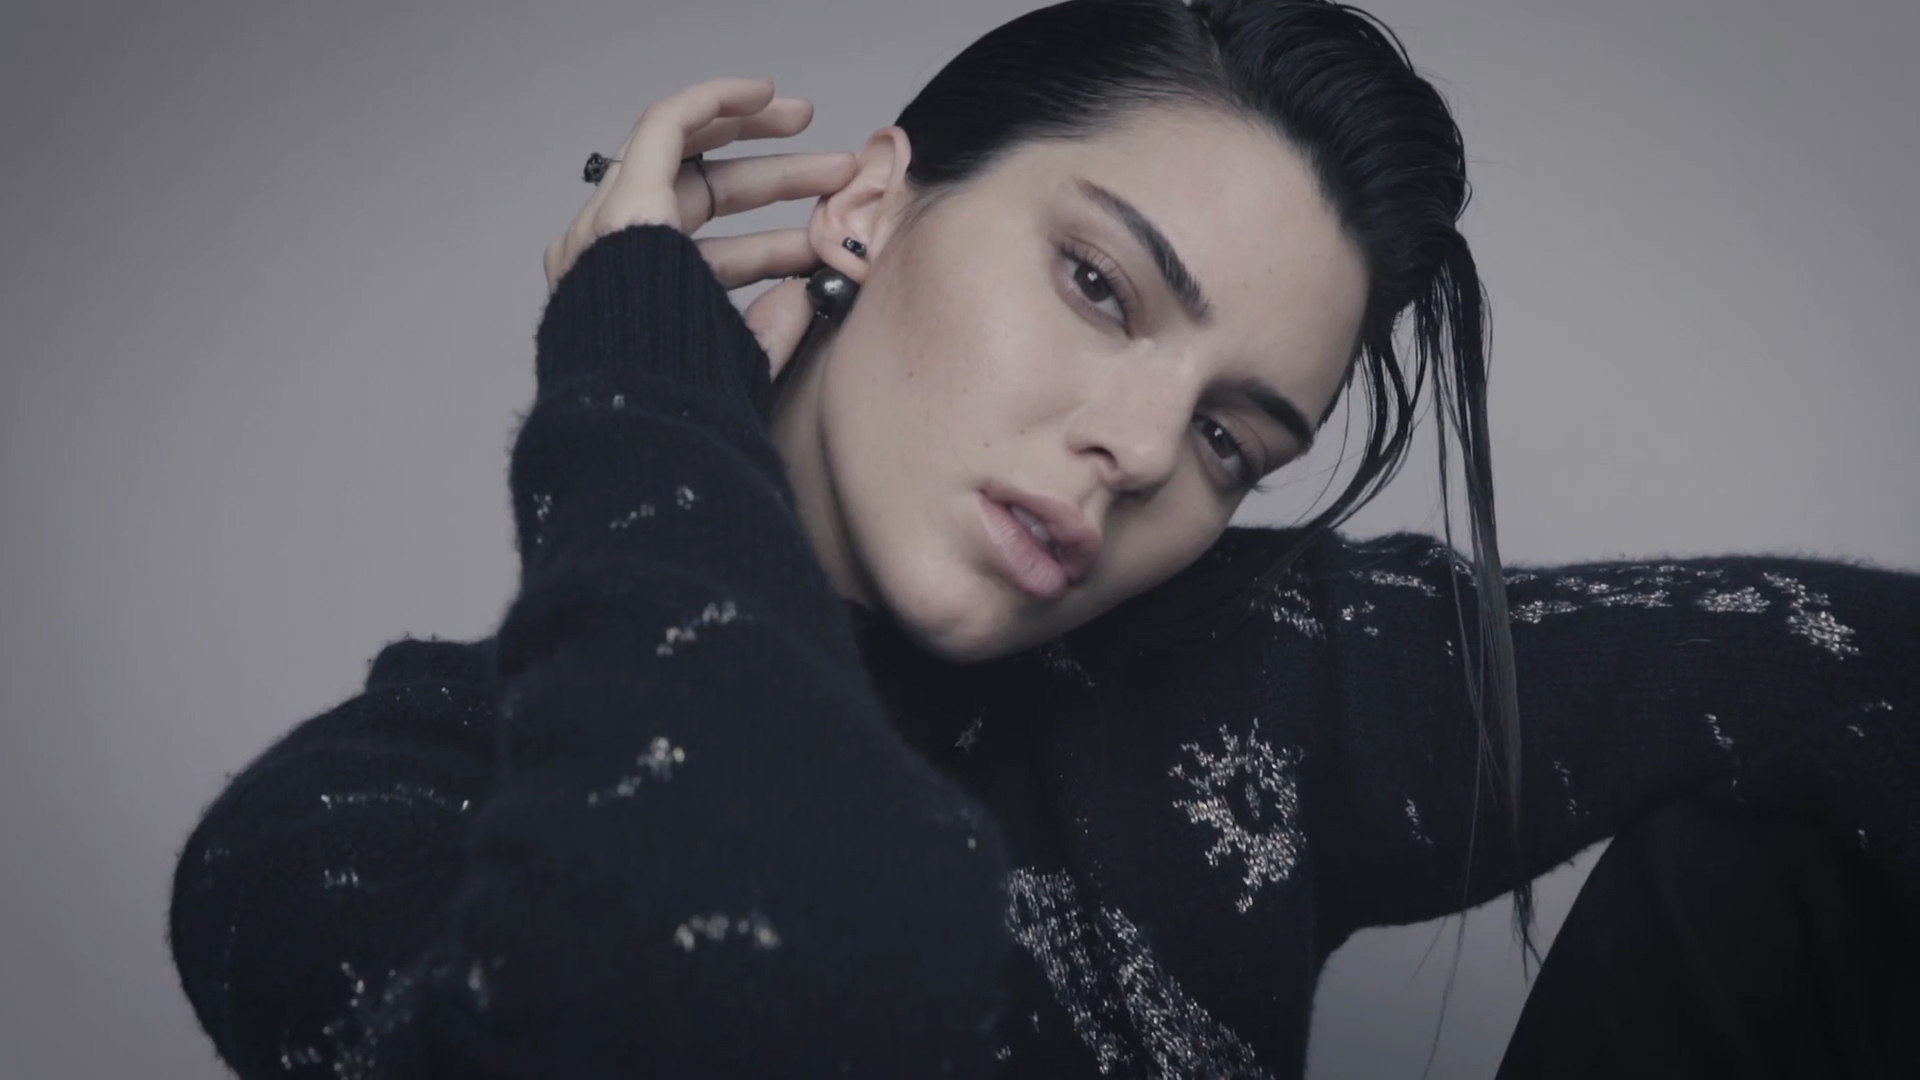 Kendall Jenner Net Worth and Her Journey as a Supermodel